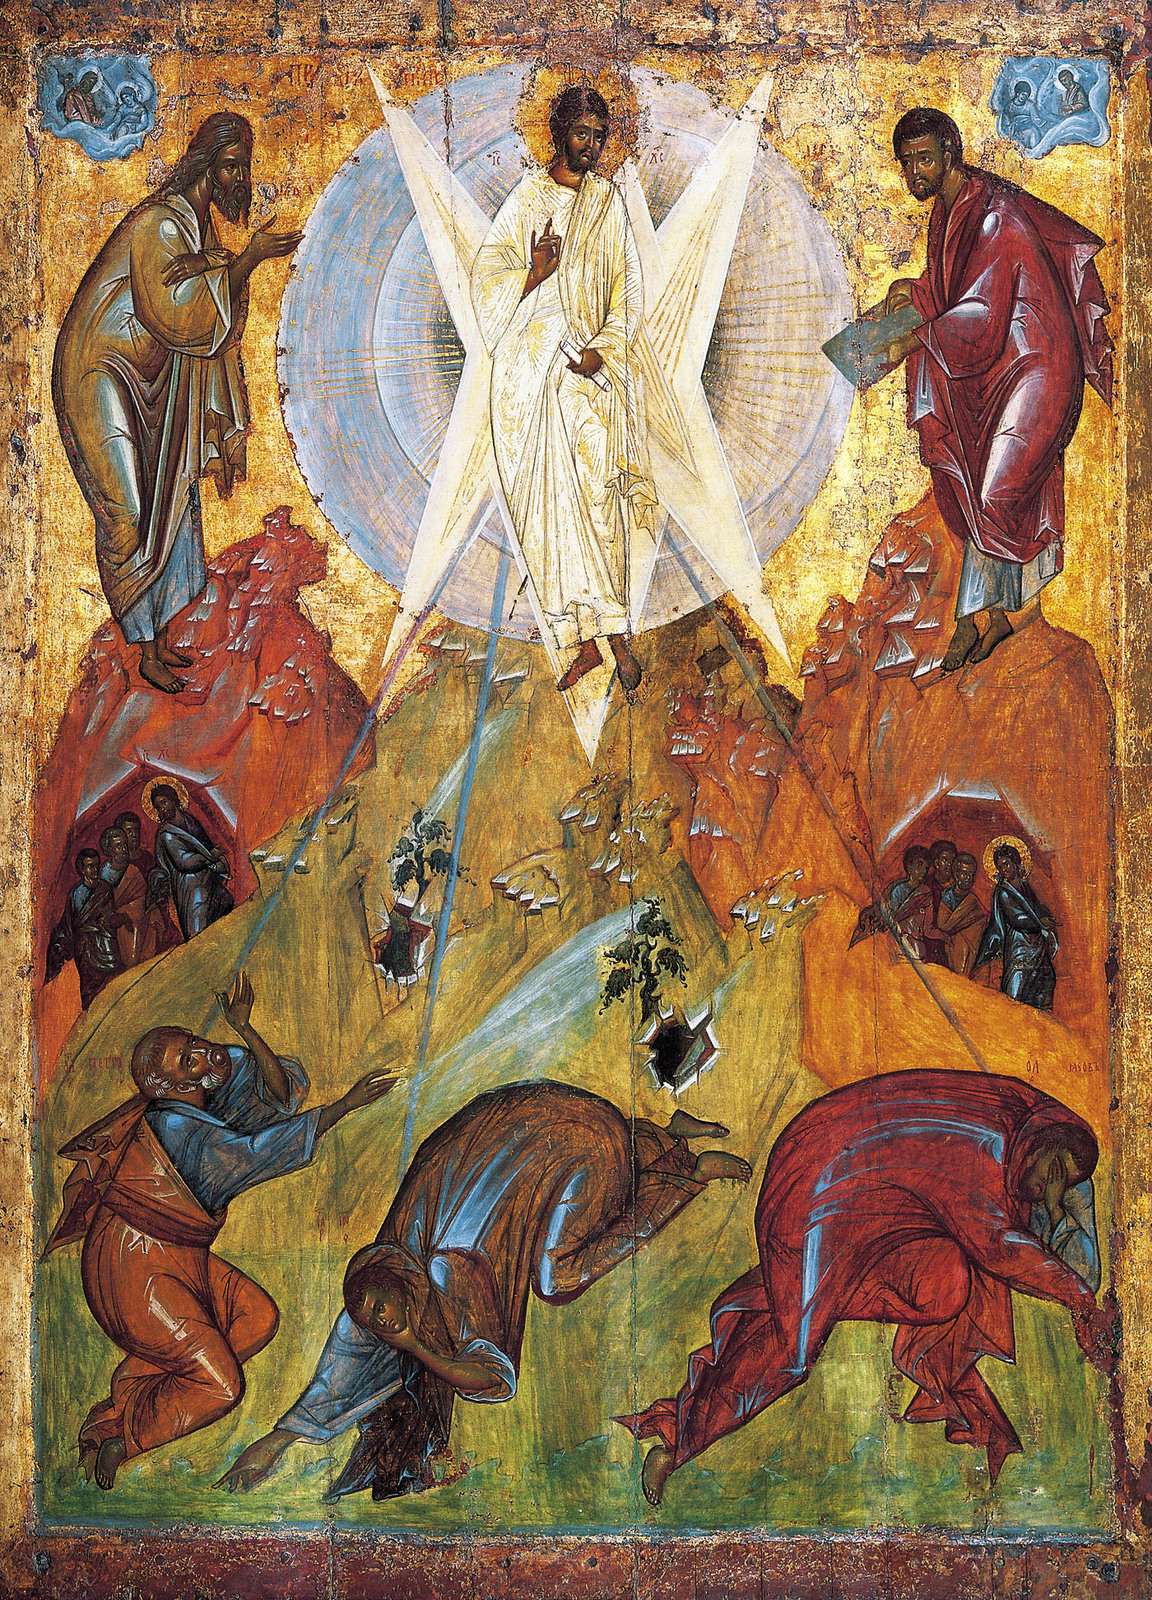 In the Orthodox Church the Transfiguration is the basis for: □ the theology  of icons; □ the theology of the nature of the material world;